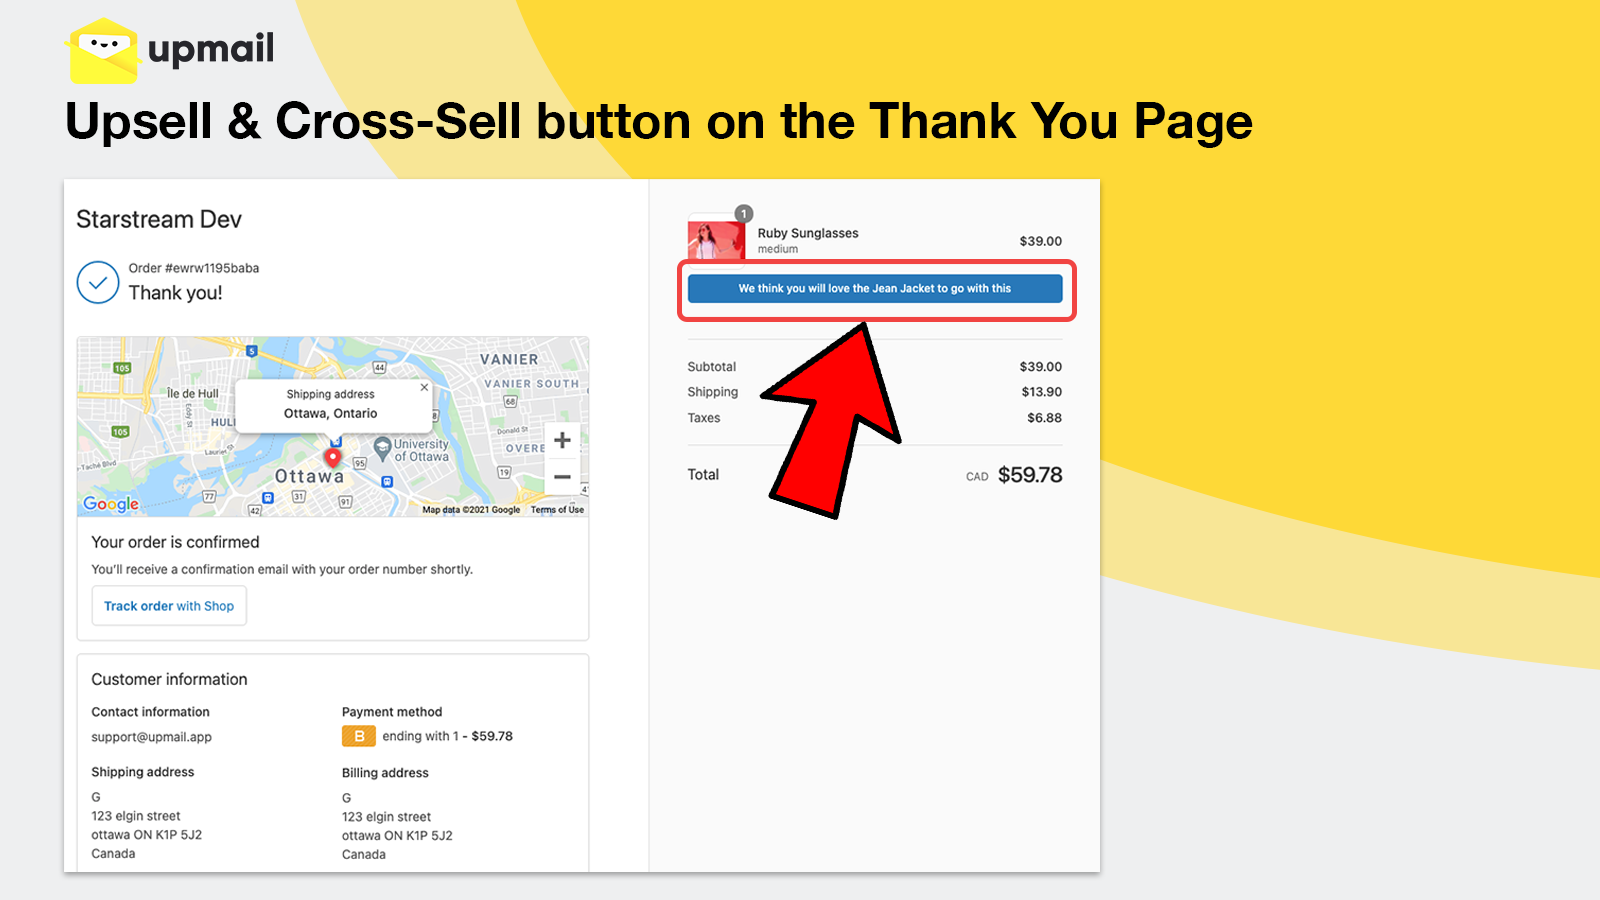 Upsell & Cross-Sell Button on the Thank You Page